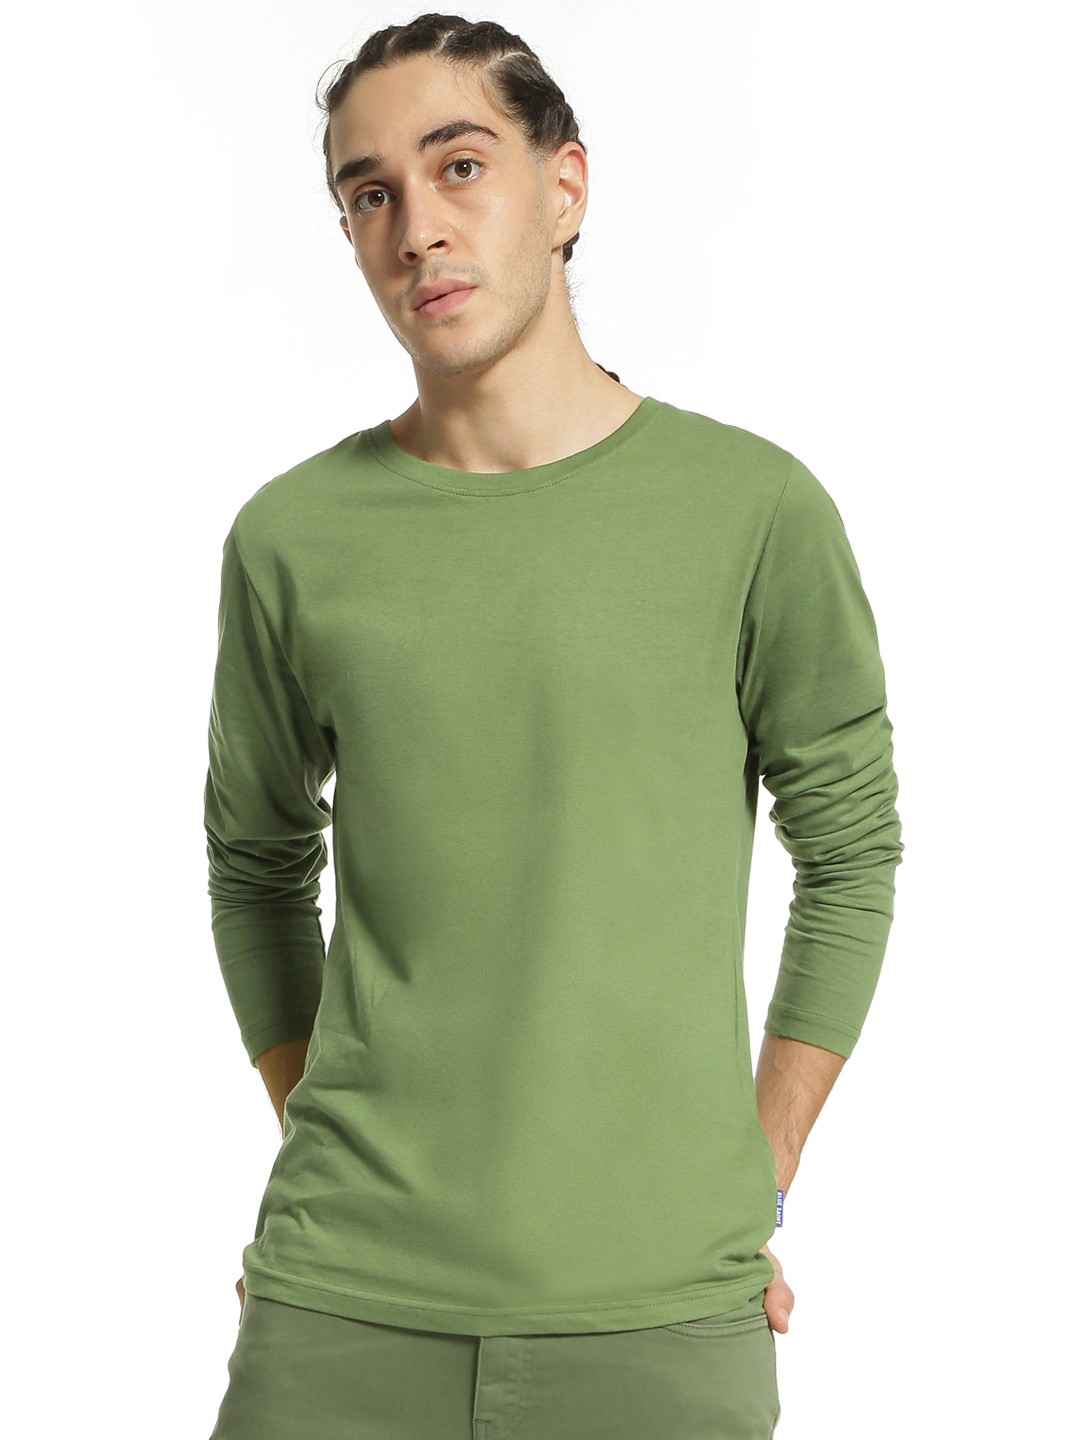 Blue Saint Green Basic Long Sleeve T-Shirt 1